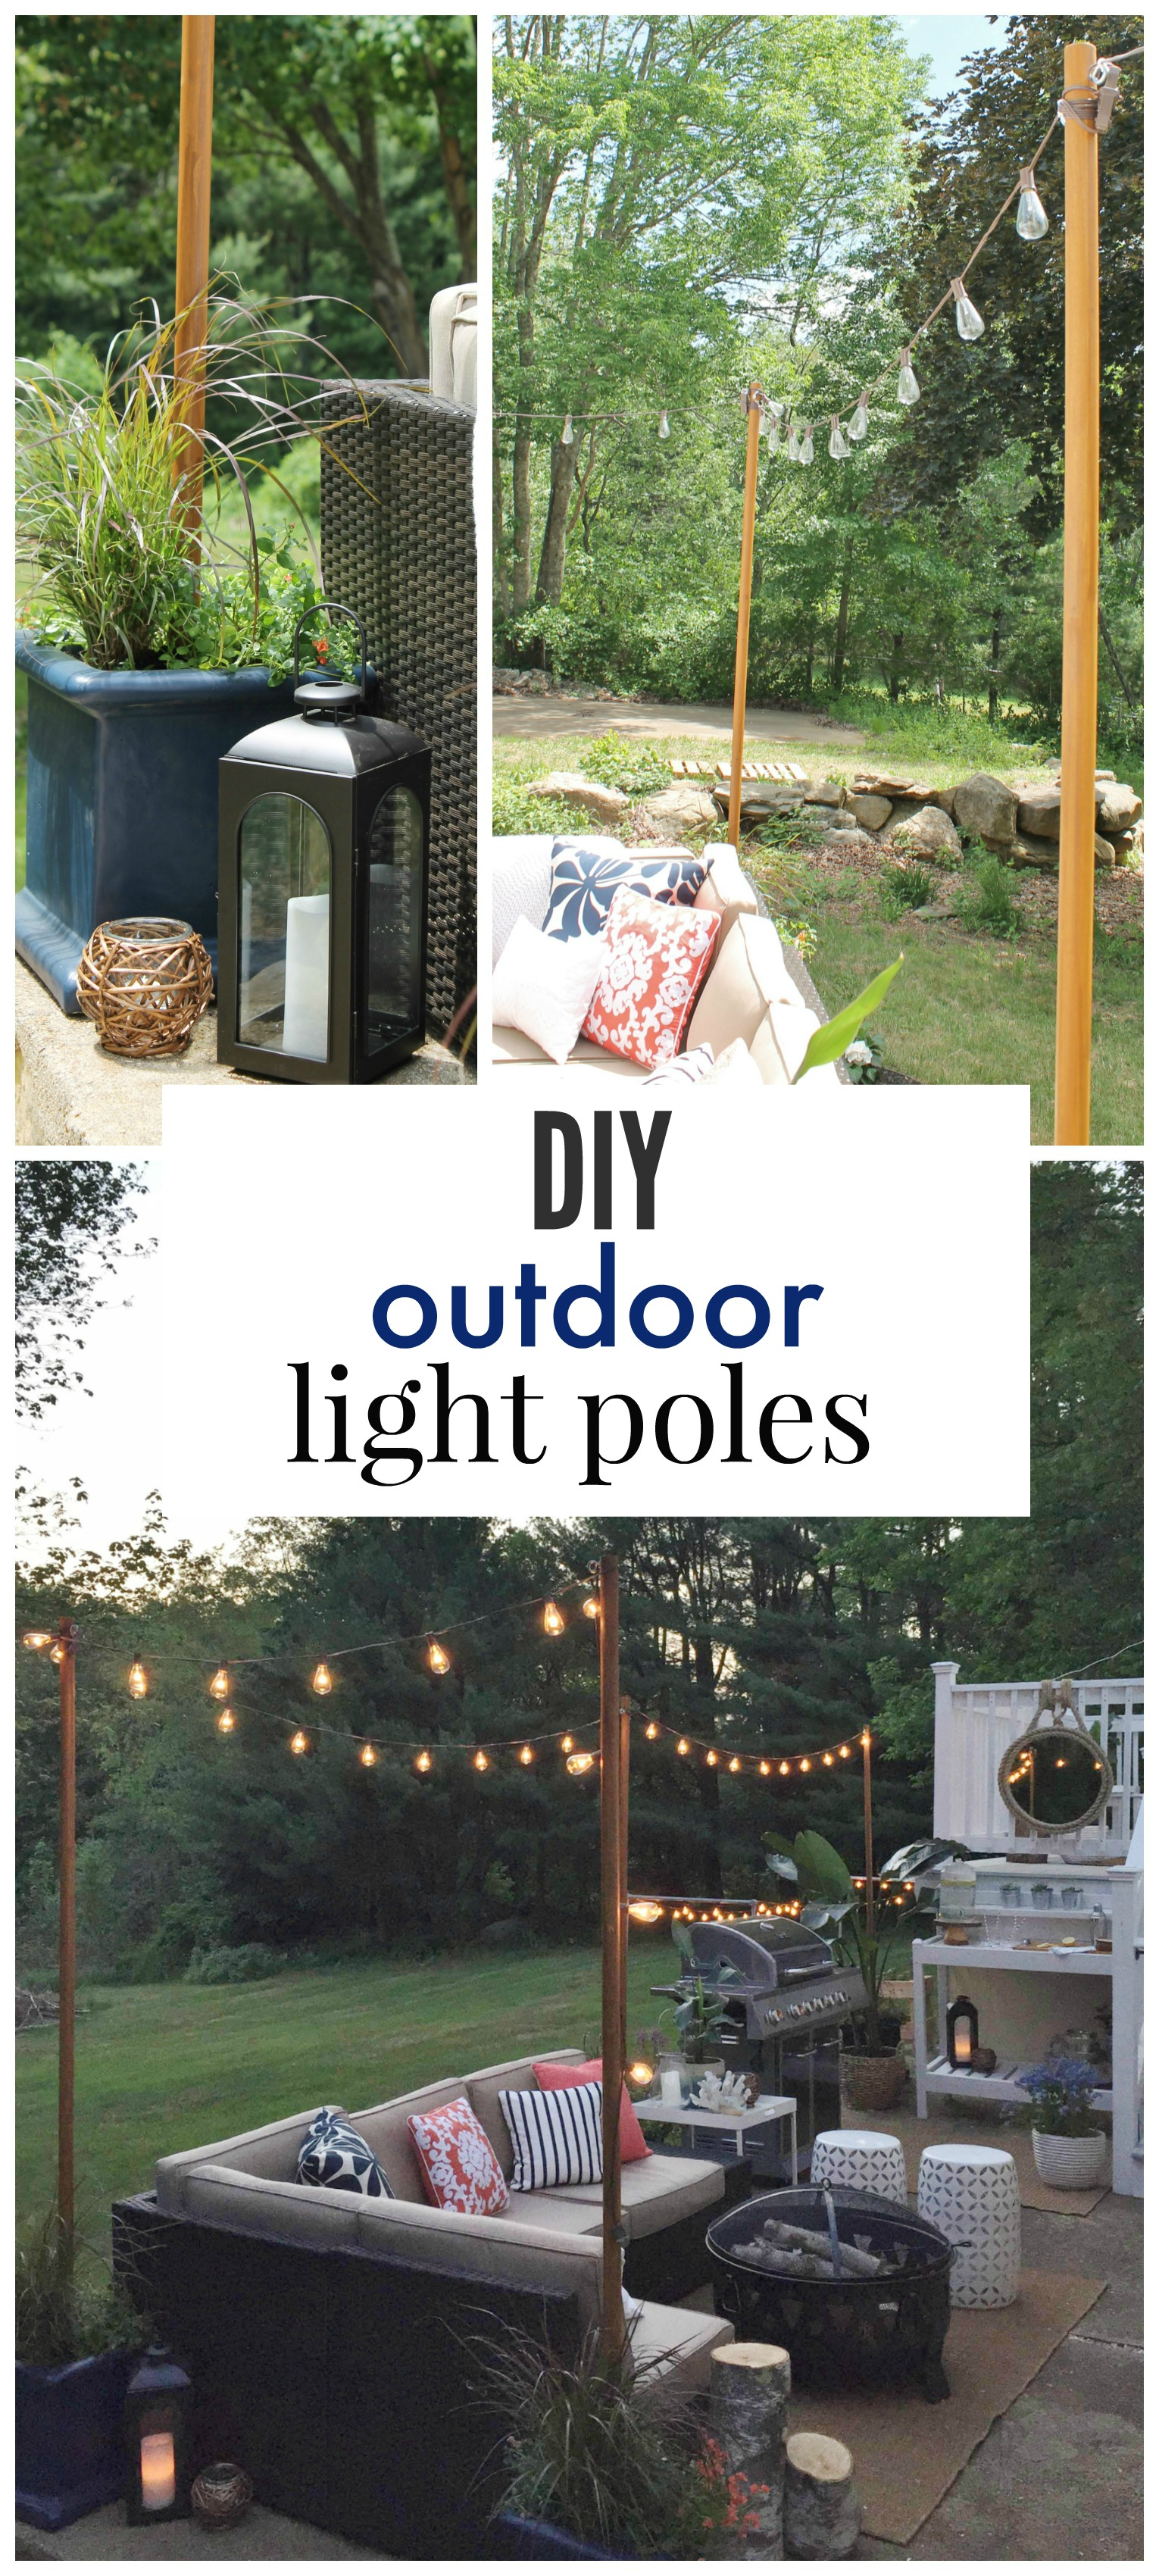 Diy outdoor light poles city farmhouse diy outdoor light poles everthing you need for outdoor lighting from lowes mozeypictures Gallery